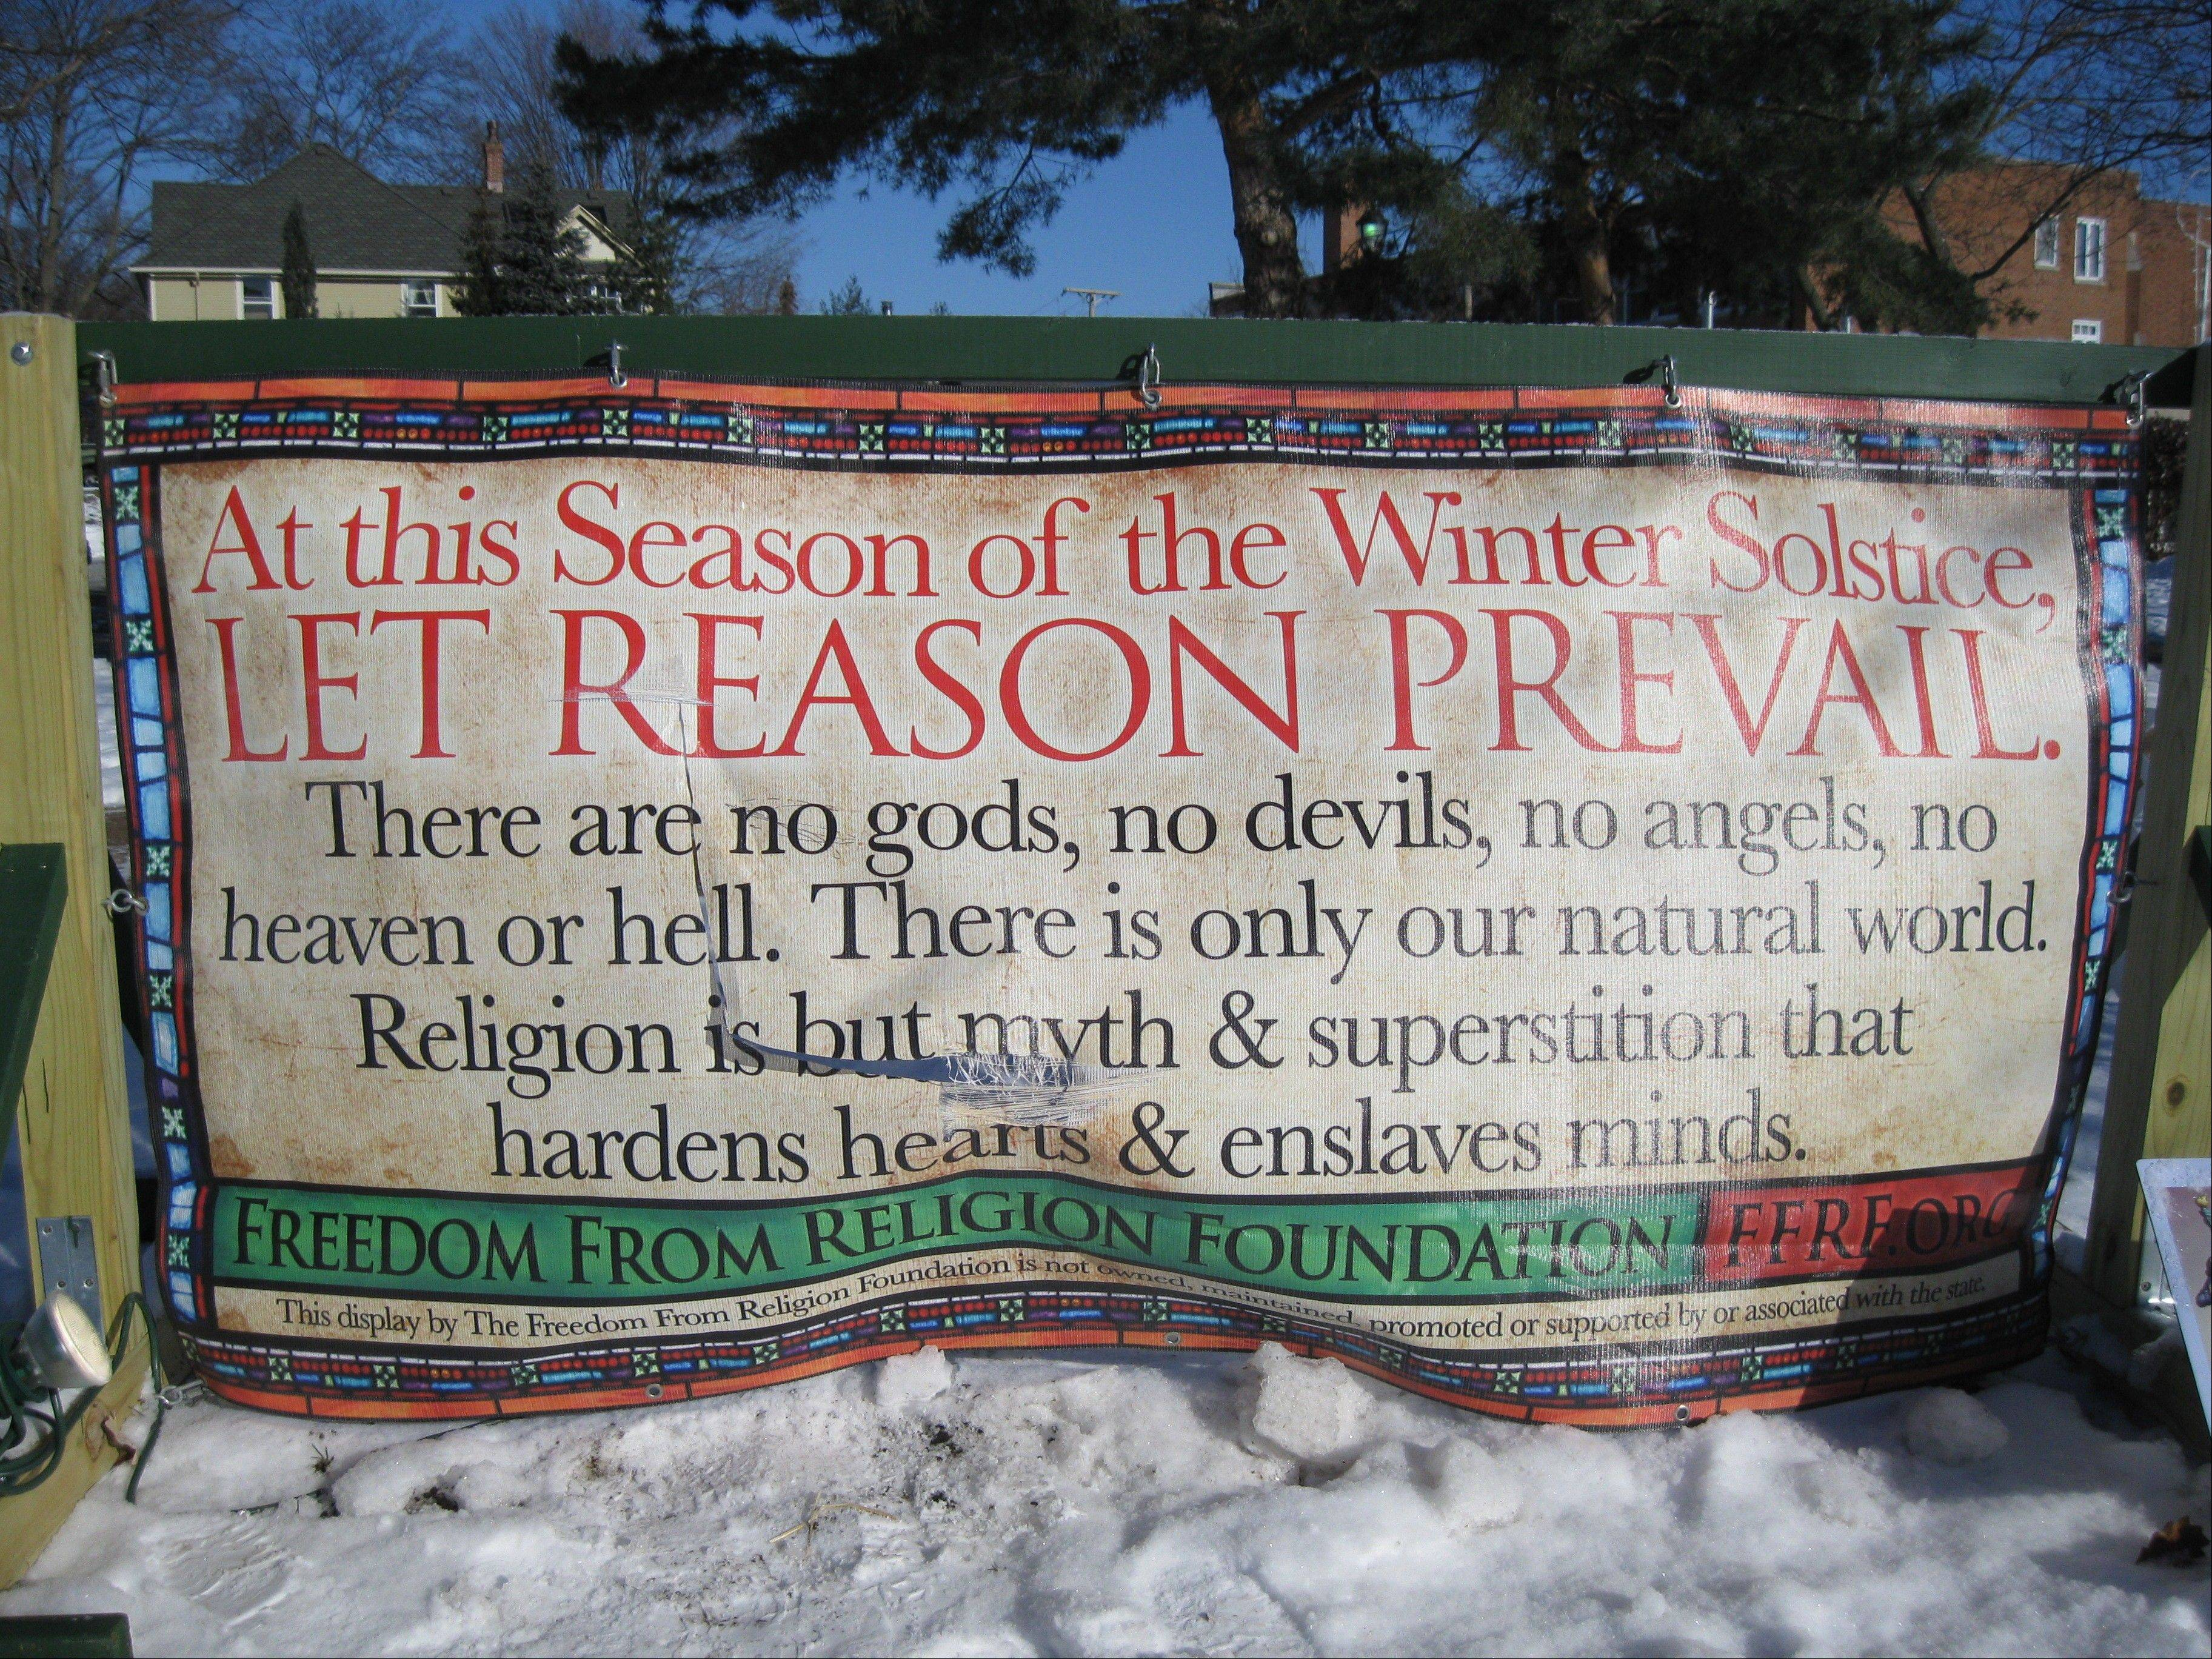 A sign put on display by the Freedom From Religion Foundation in an Arlington Heights park was recently vandalized, police said. This is the second year the group has placed the banner next to a Nativity scene in the public park.